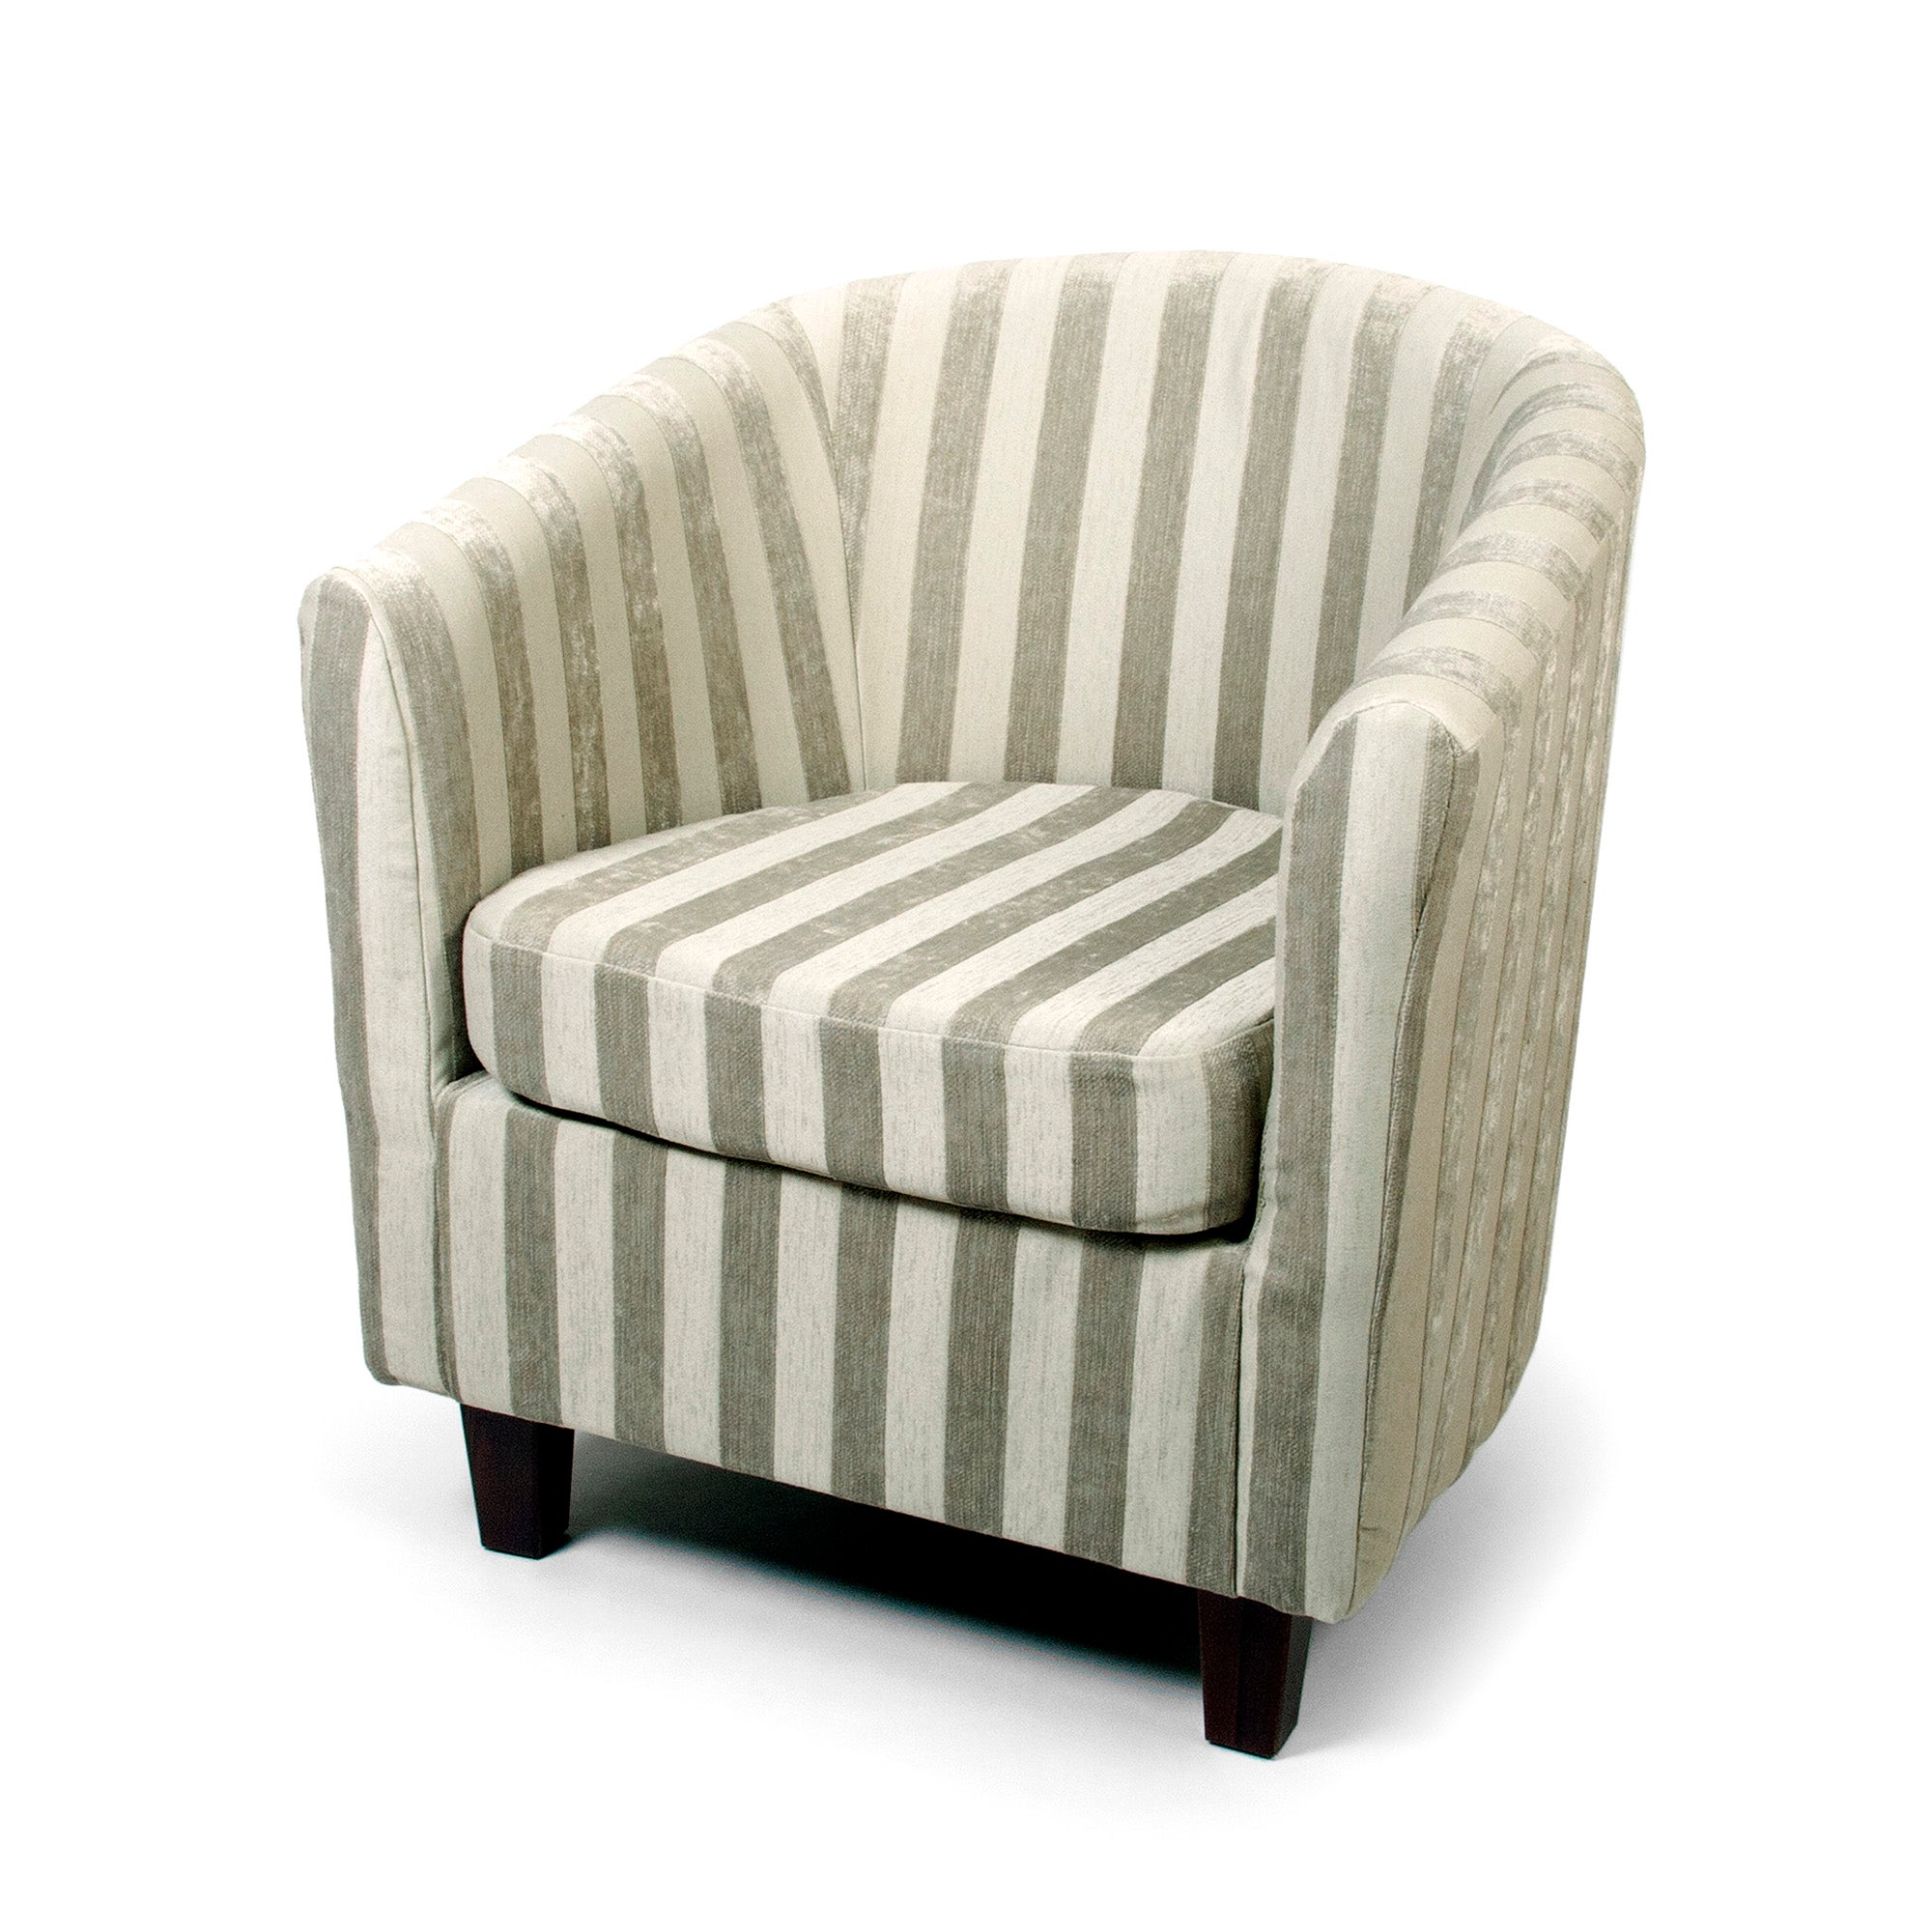 buy cheap green tub chair compare chairs prices for best. Black Bedroom Furniture Sets. Home Design Ideas